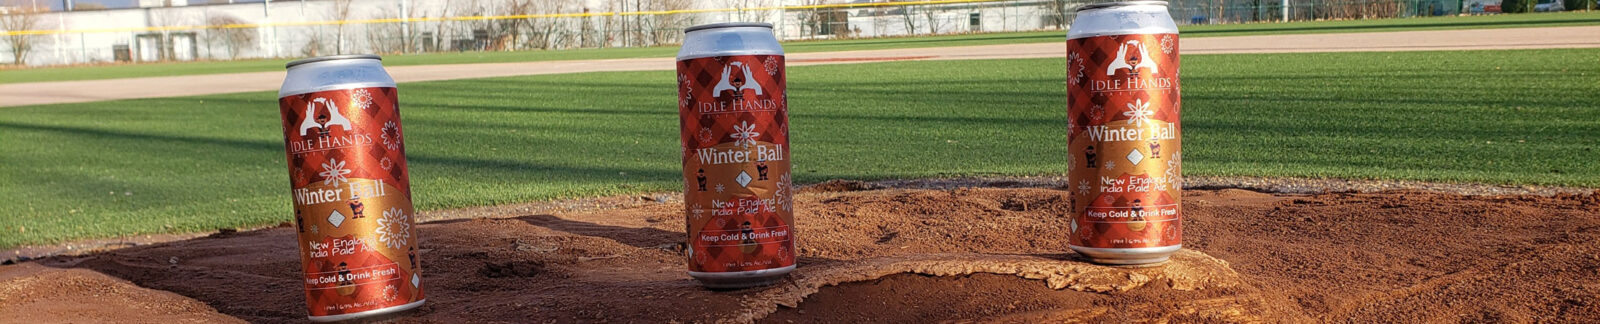 Winter Ball IPA by Idle Hands Brewery